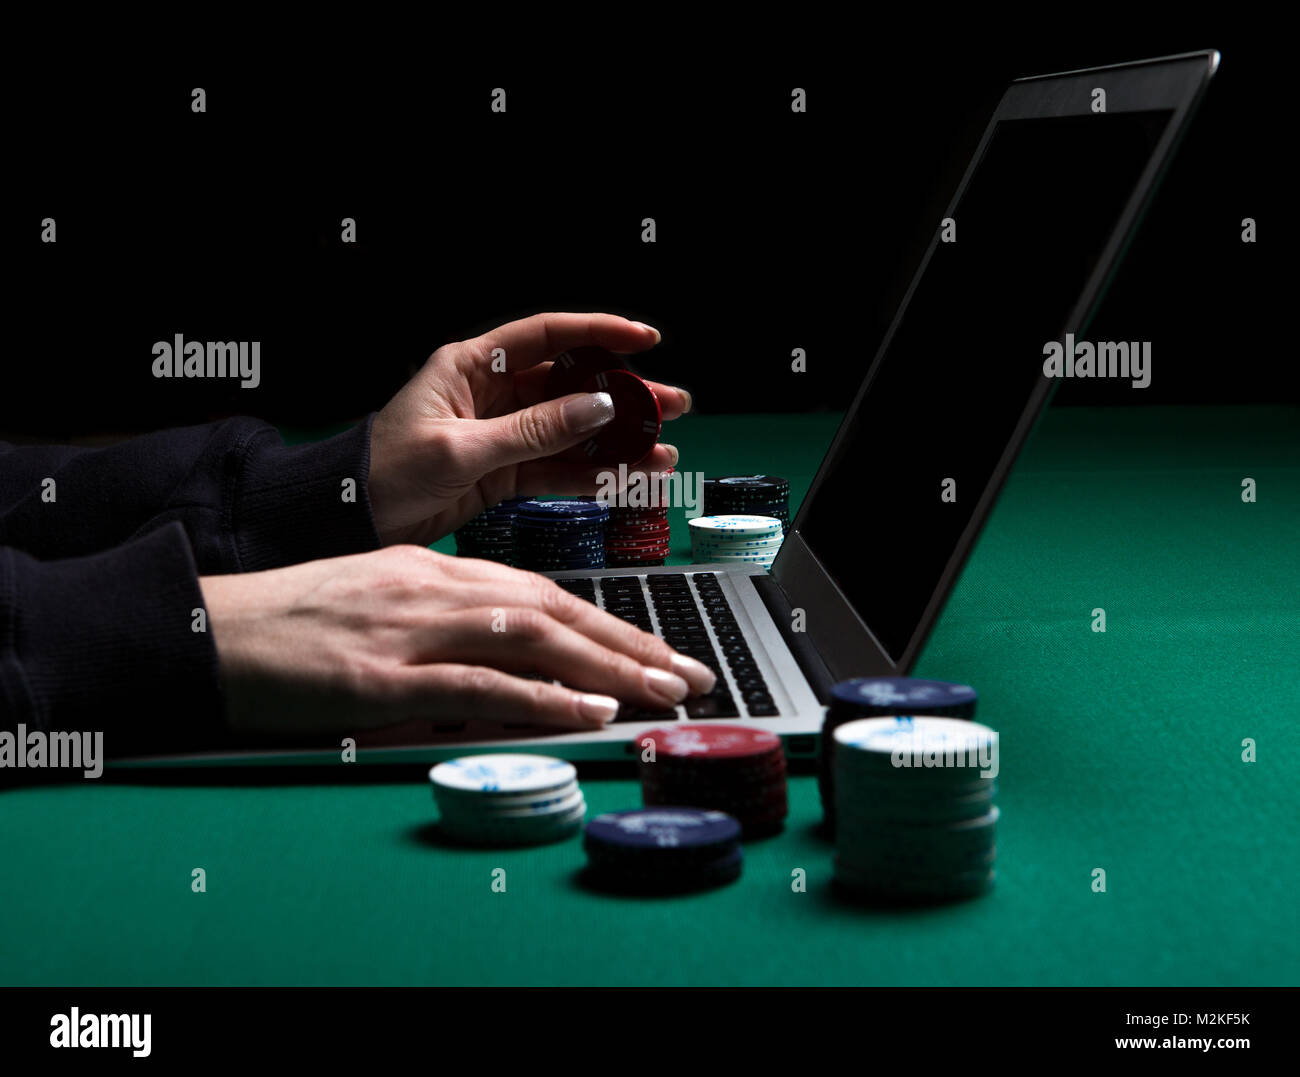 Woman playing online poker with laptop on a green table with chips all around, side view - Stock Image